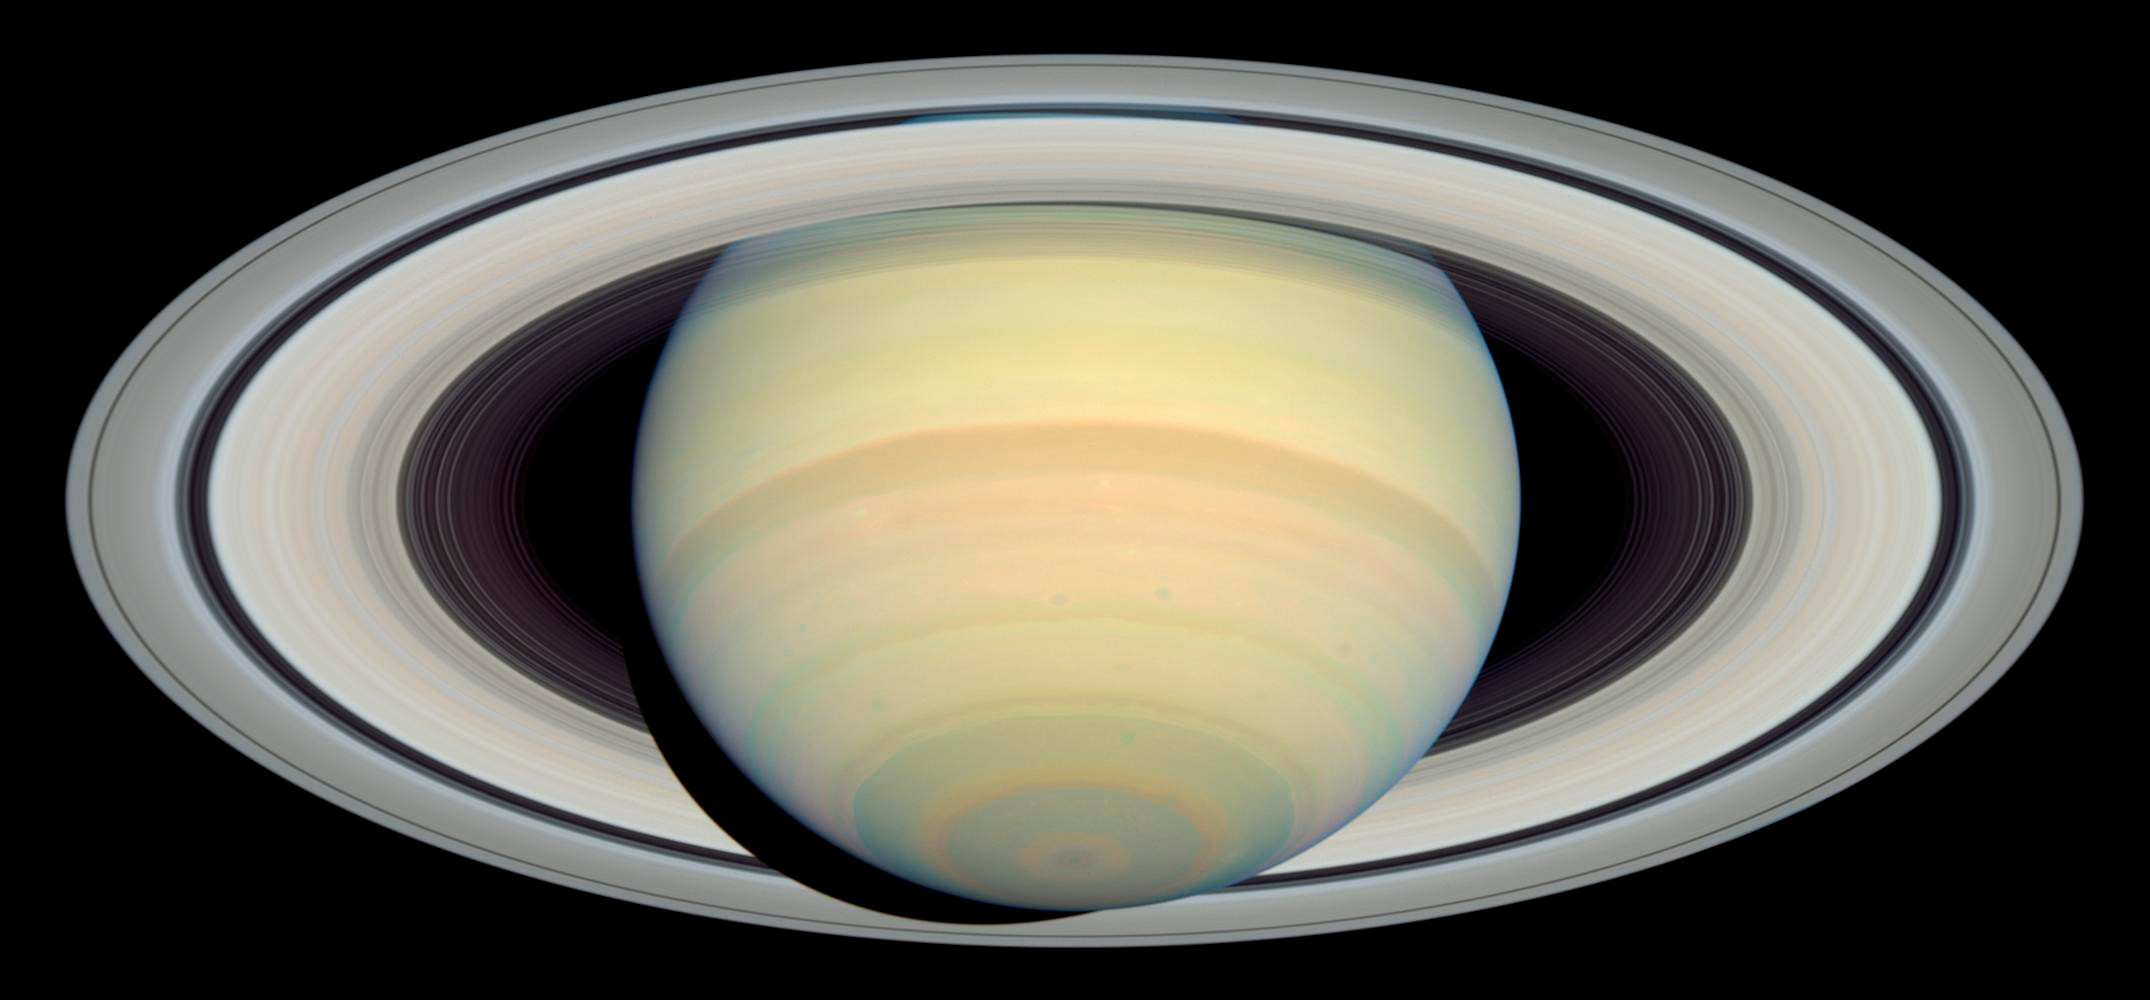 Saturn and it's rings